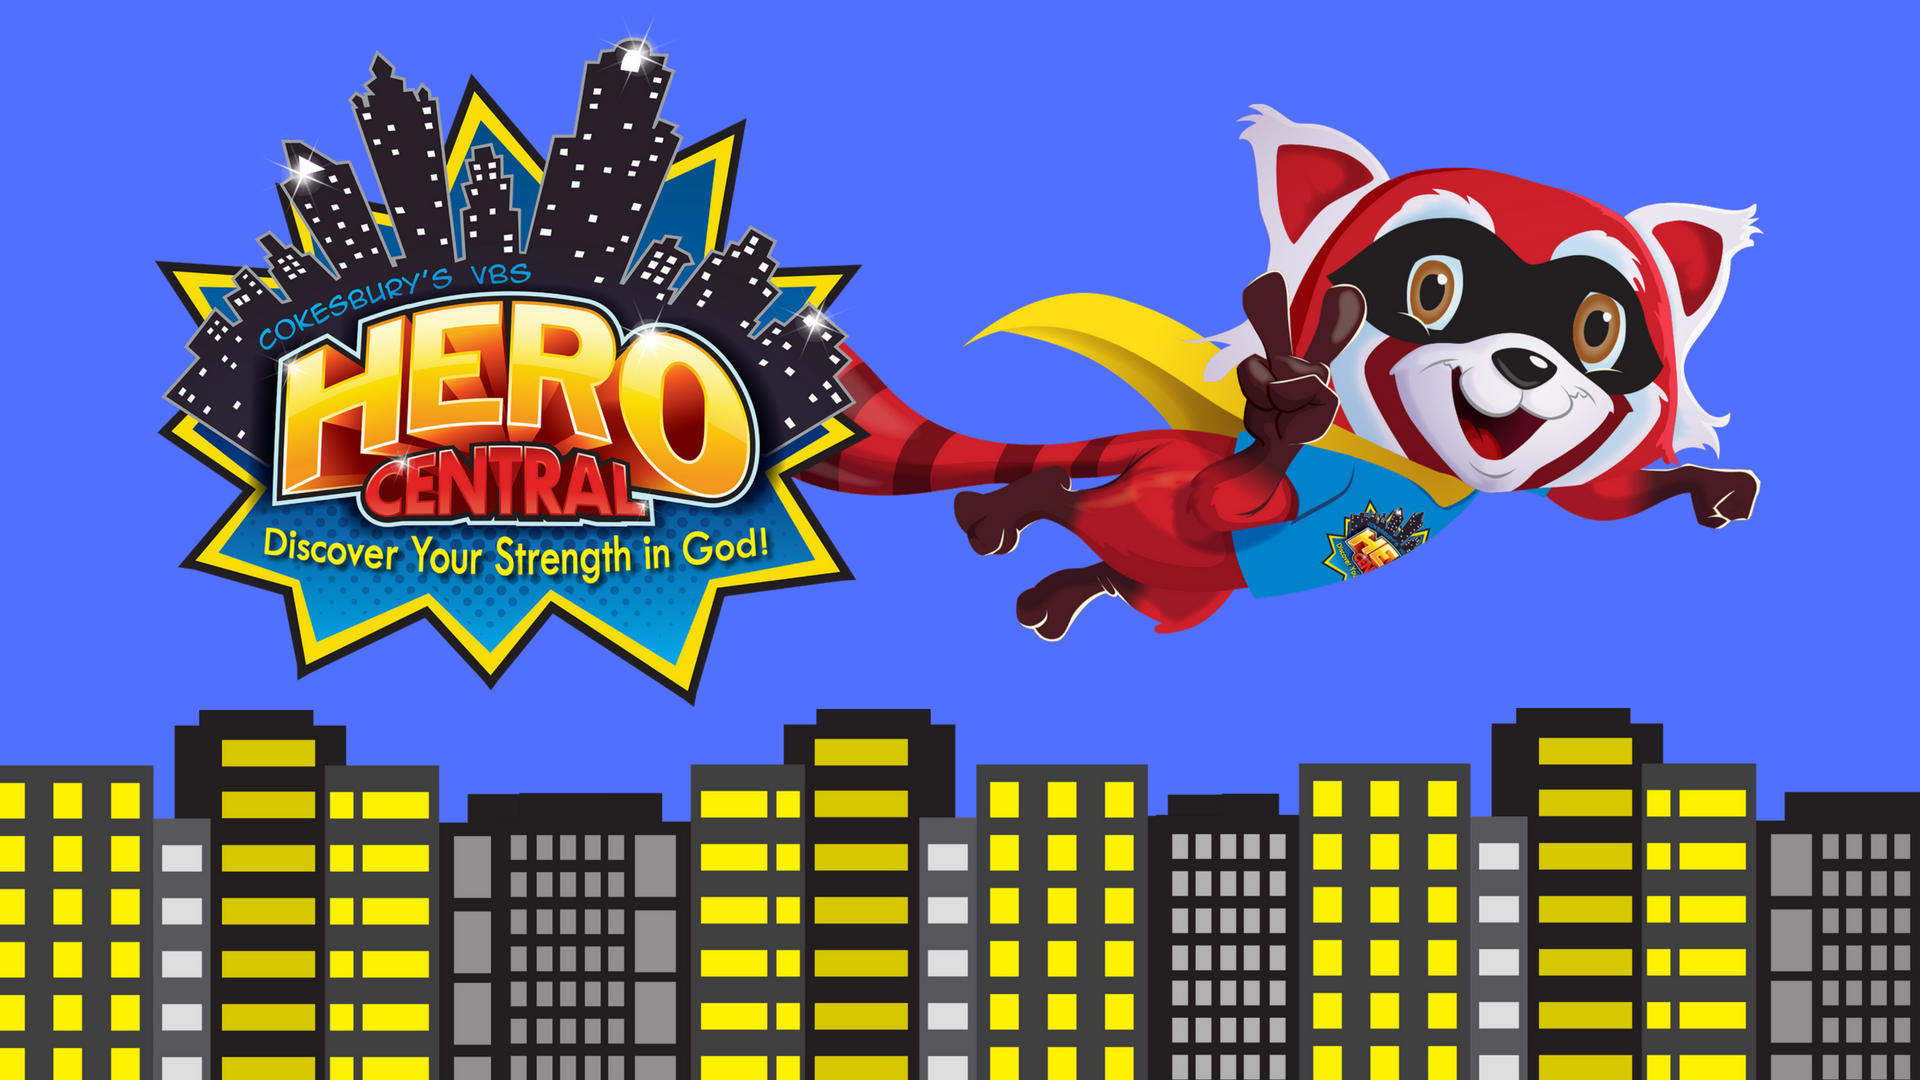 Hero central fb event